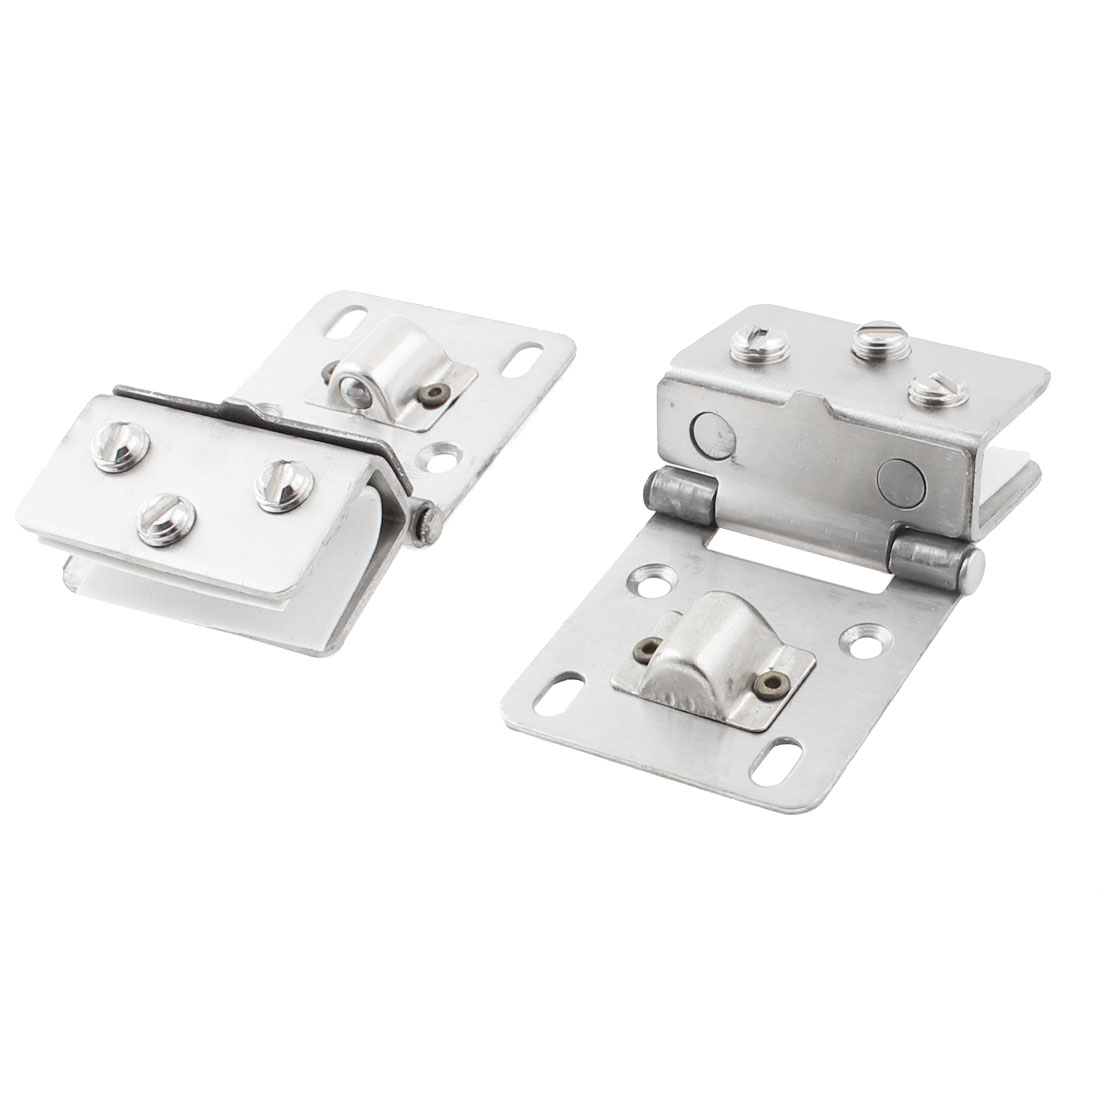 Cabinet 8mm-12mm Thickness Glass Door Metal Wall Mounted Clamp Clip Hinge 2pcs